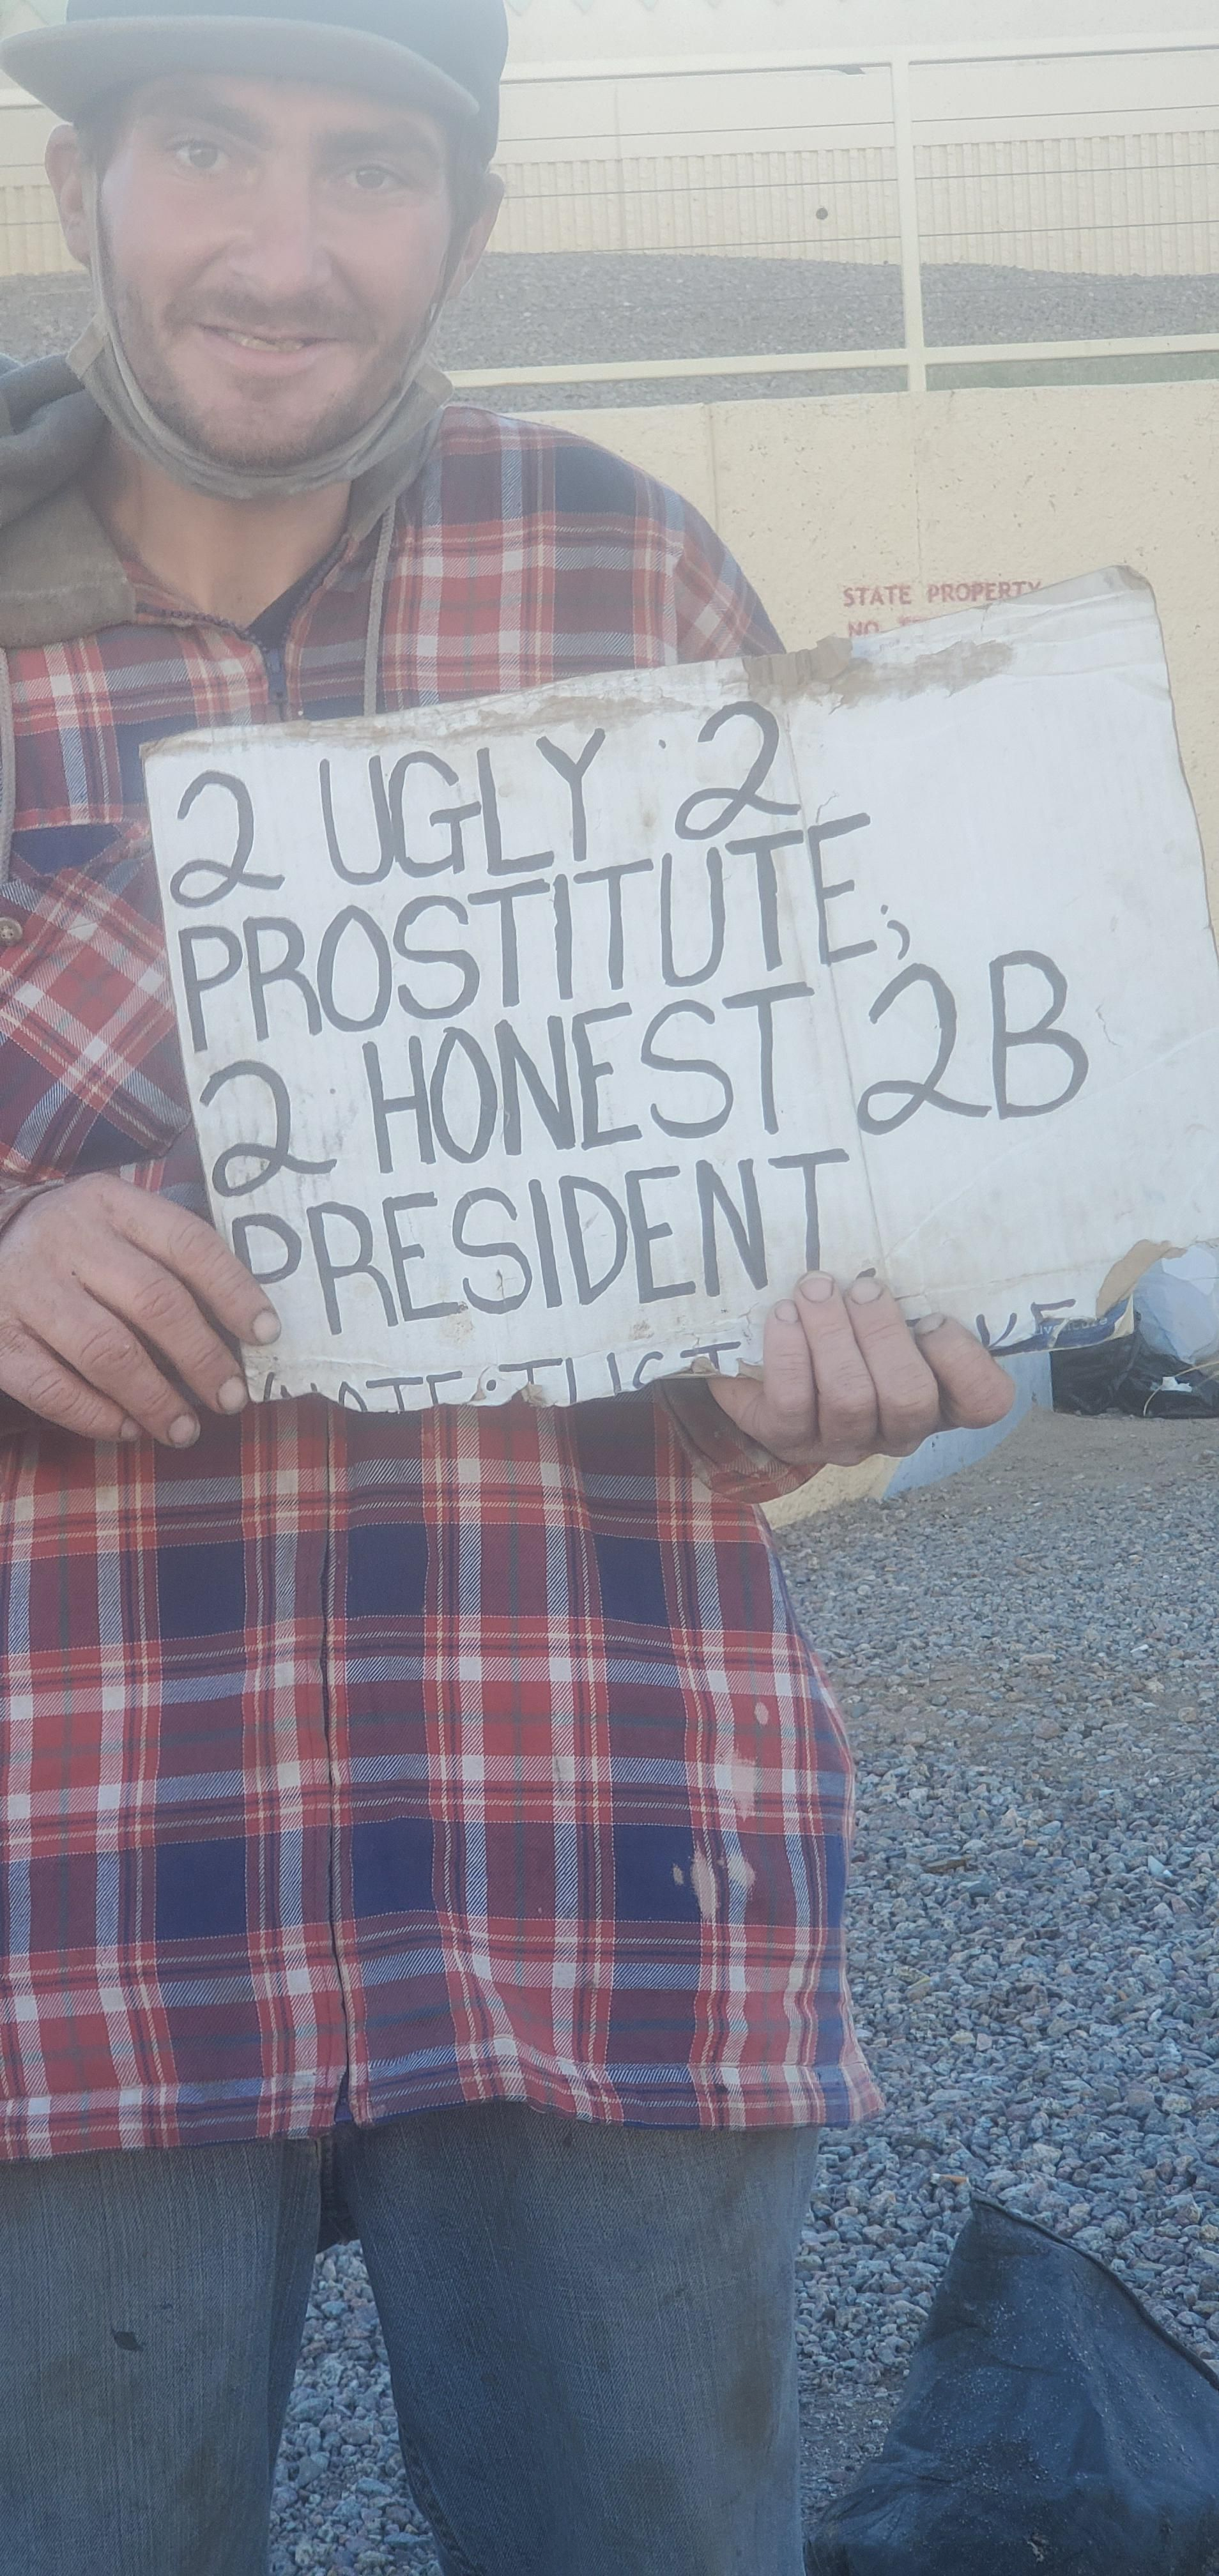 I had to give him money after that sign